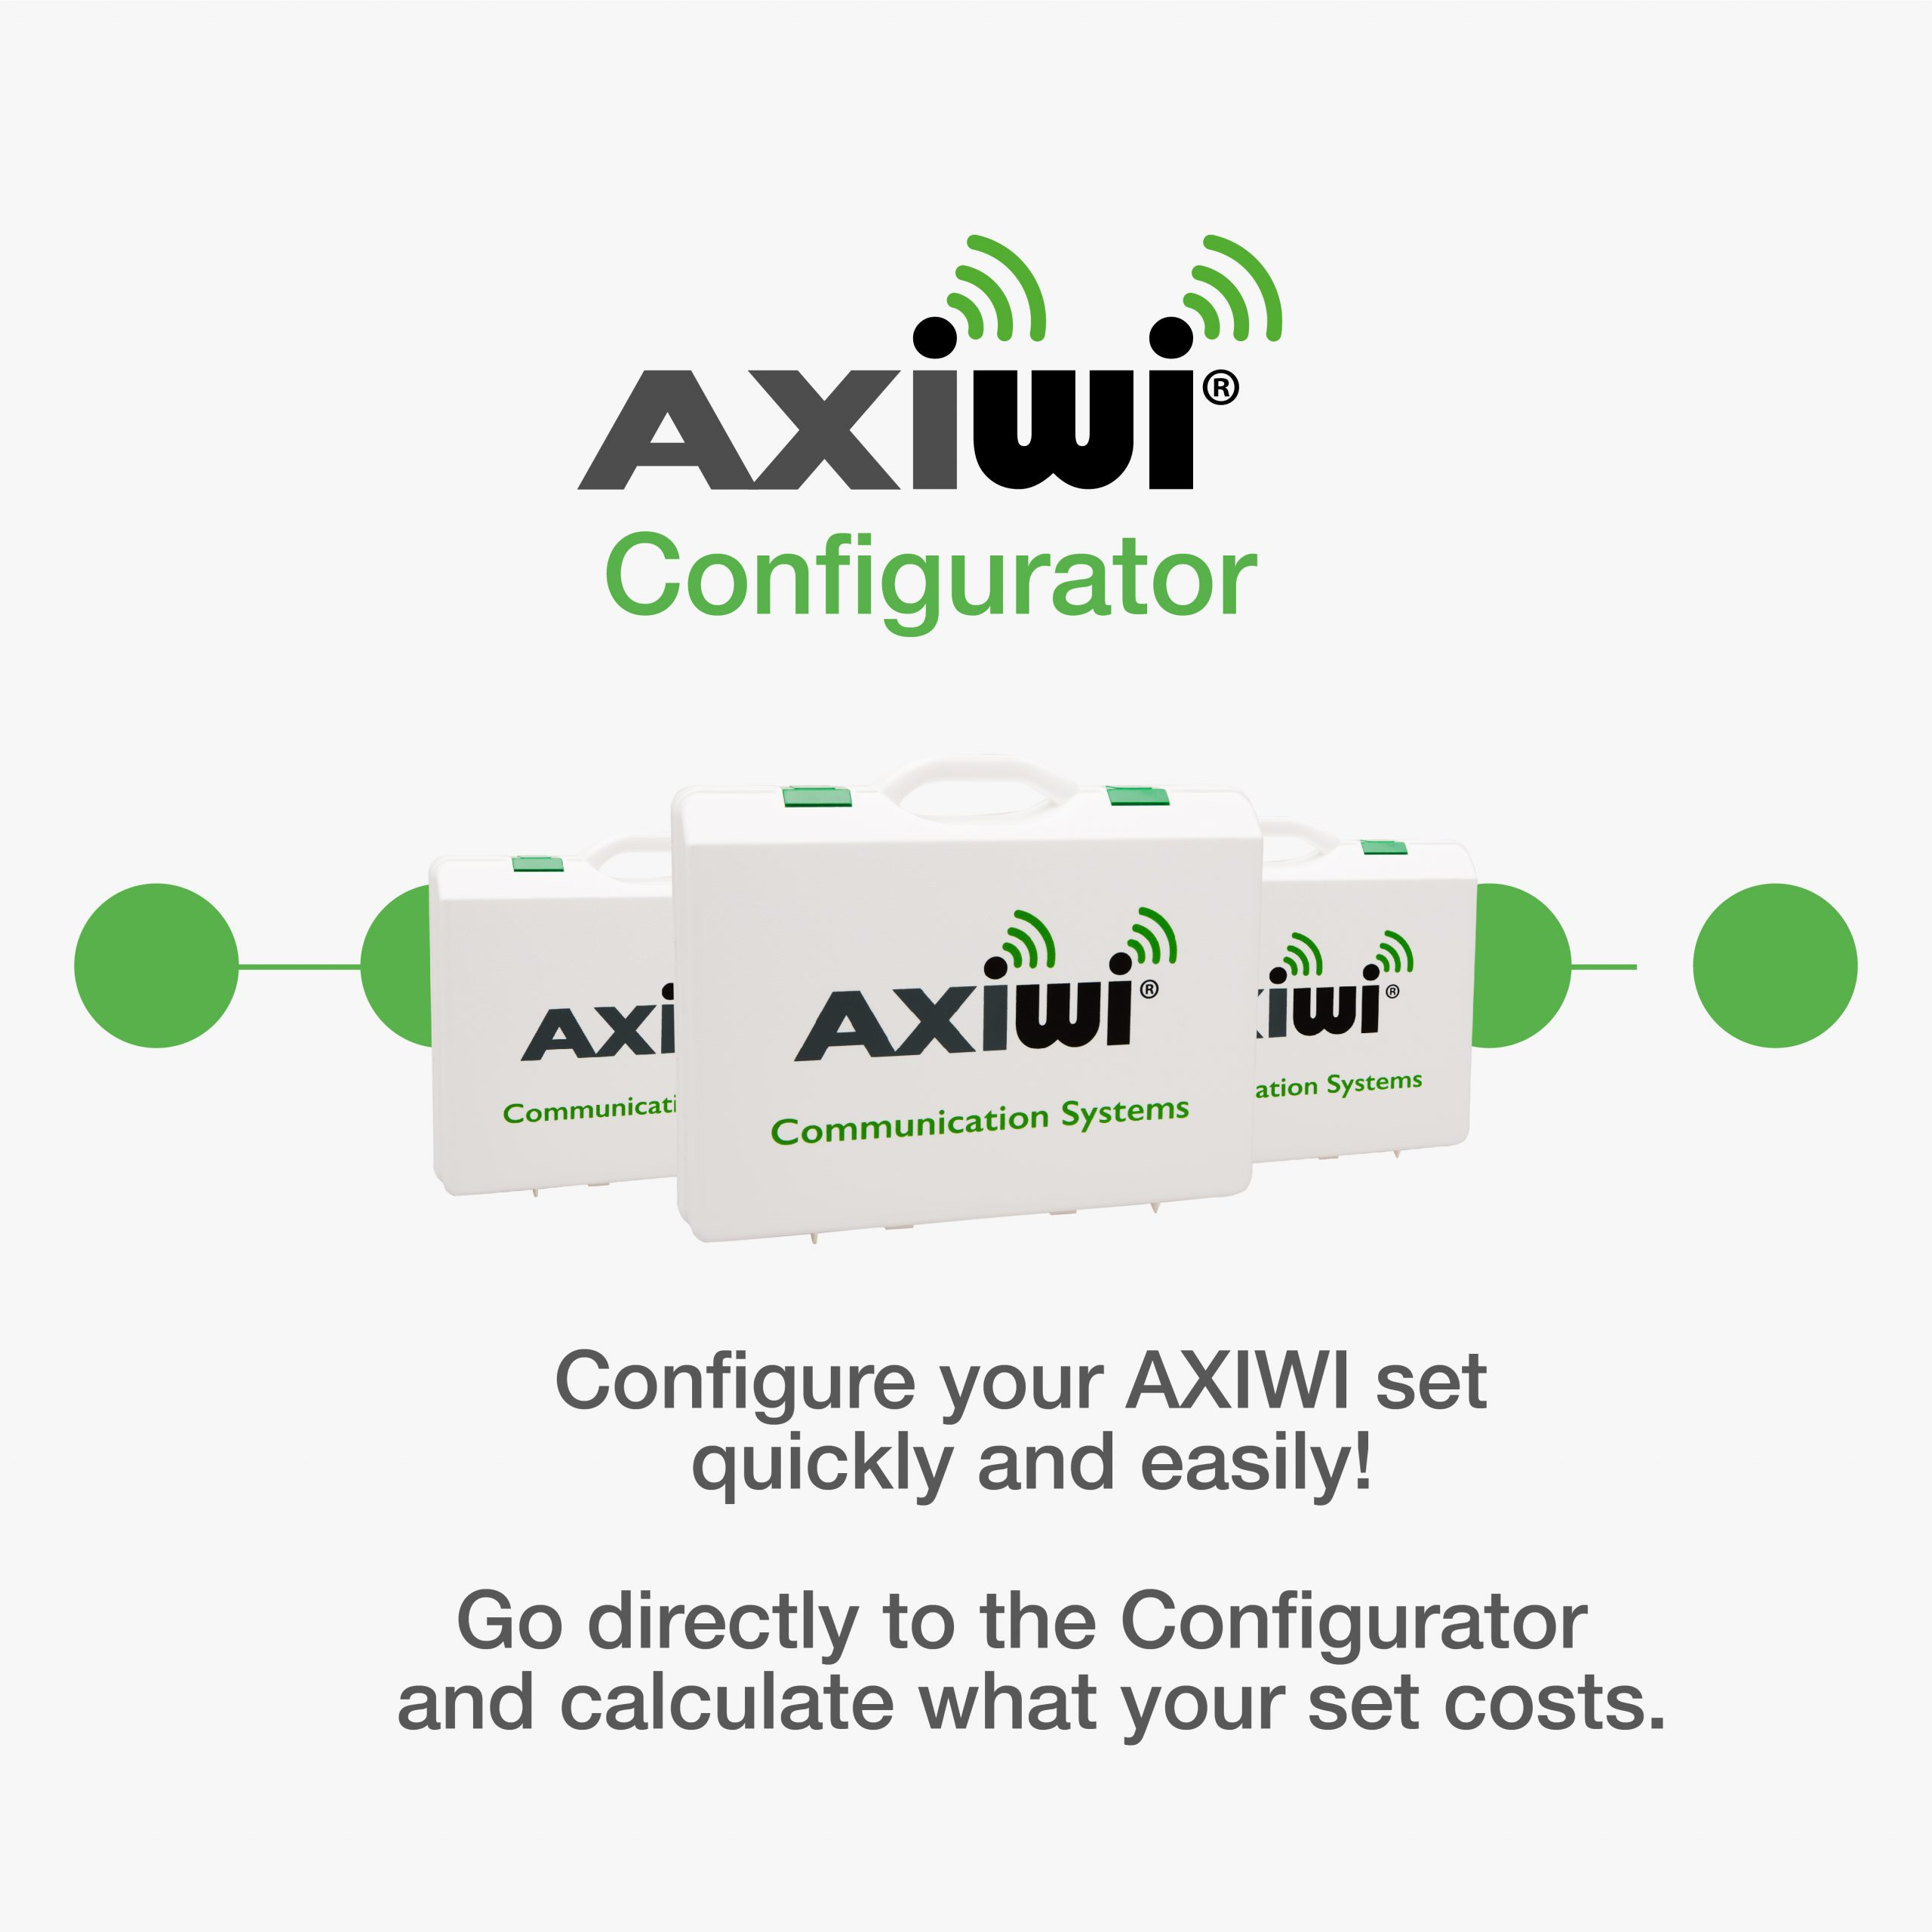 the axiwi configurator